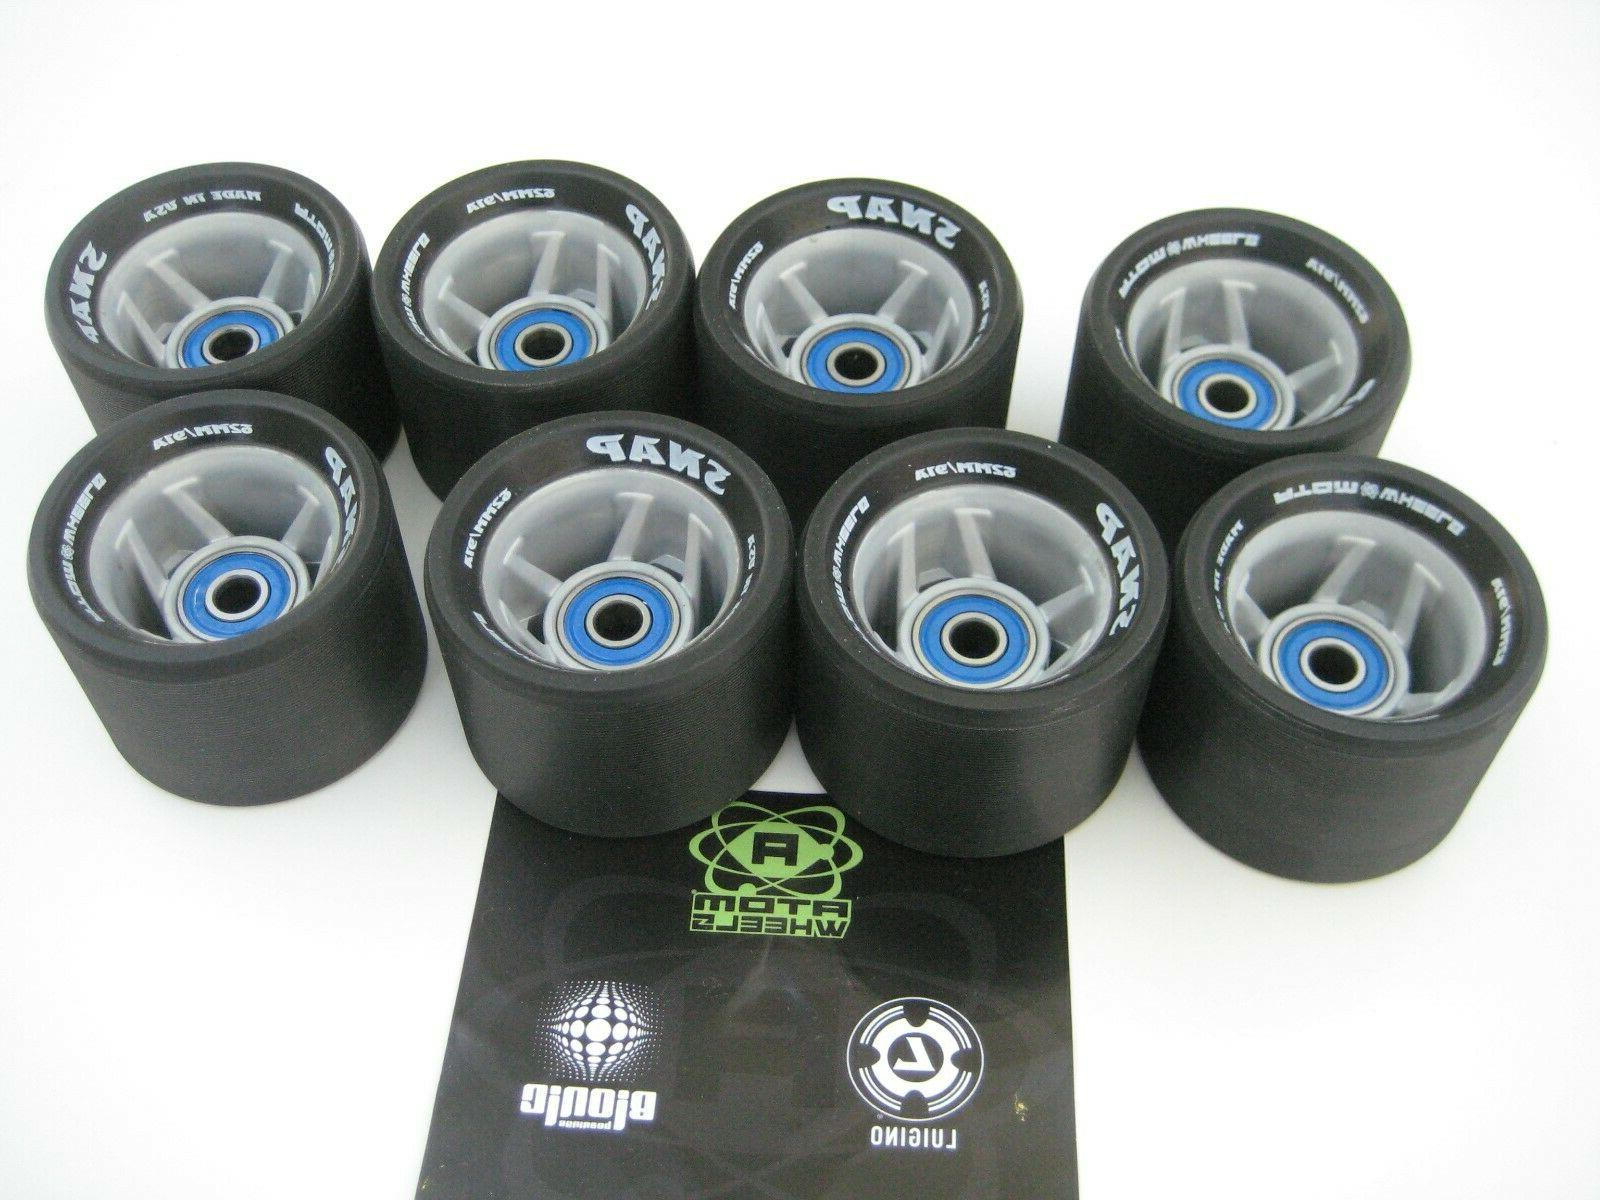 ATOM SNAP DERBY WHEELS 8 NEW LYNX speed 7